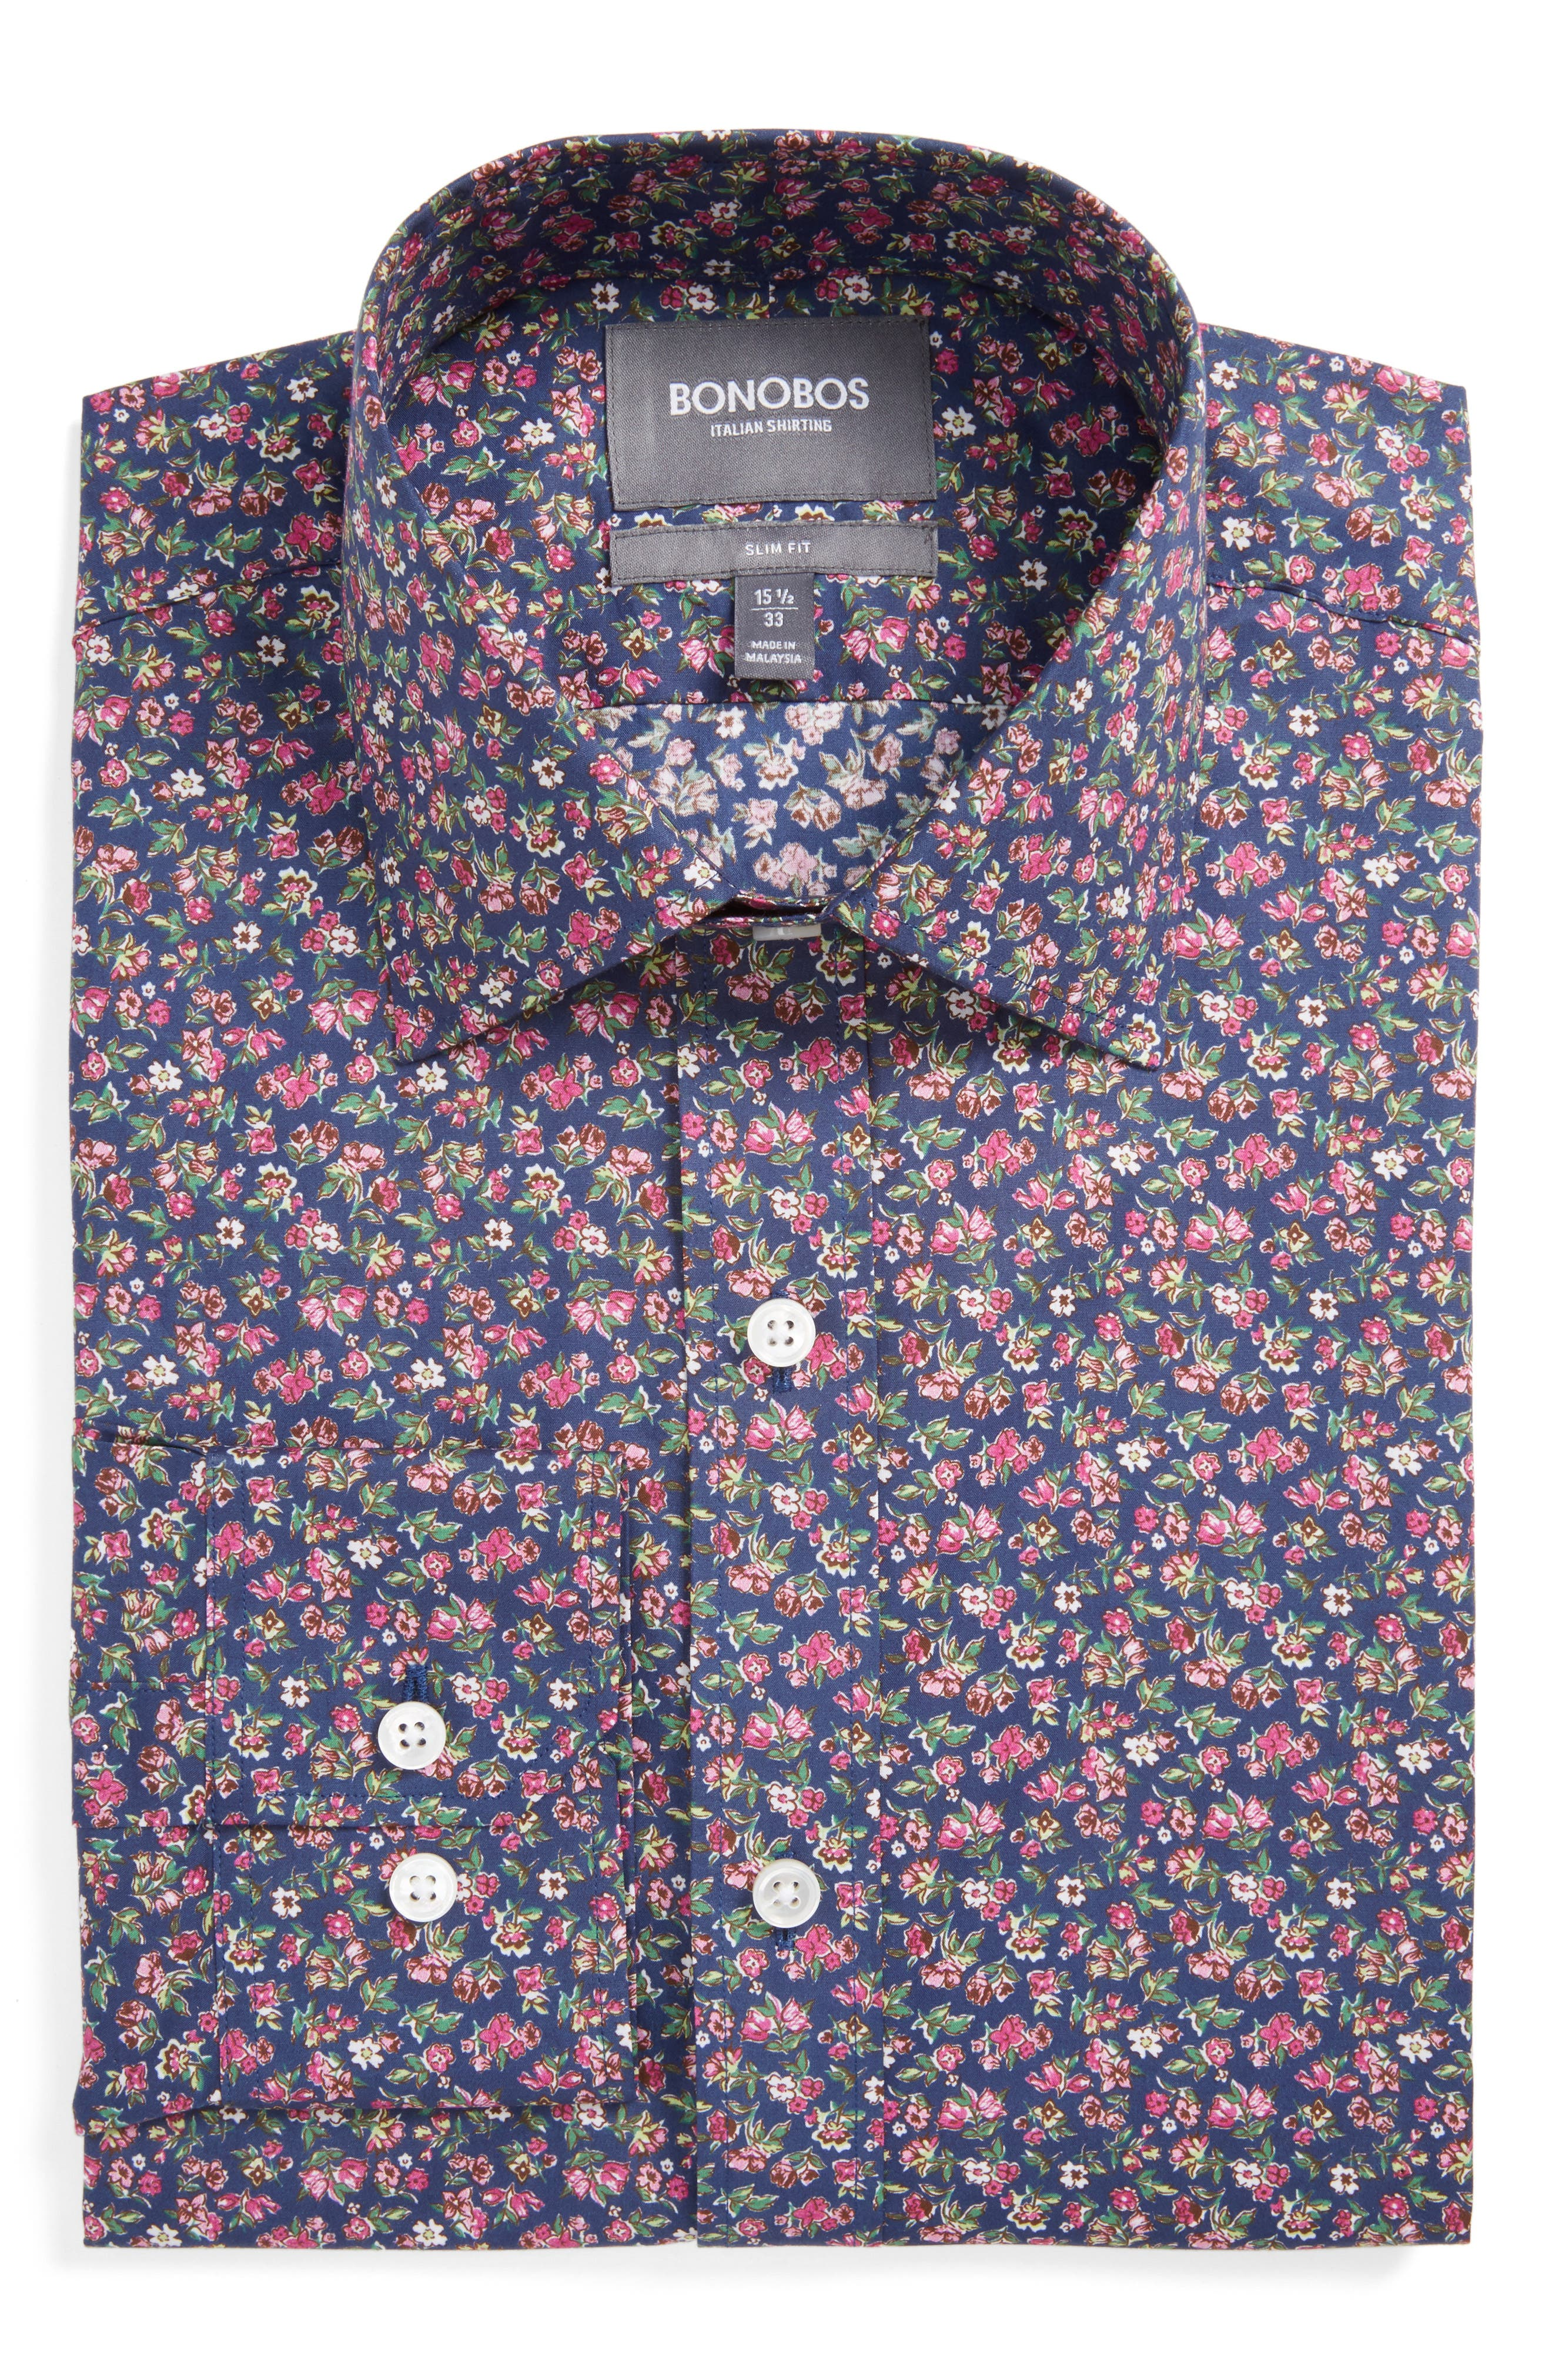 Americano Slim Fit Floral Dress Shirt,                             Main thumbnail 1, color,                             Pink Kistler Floral